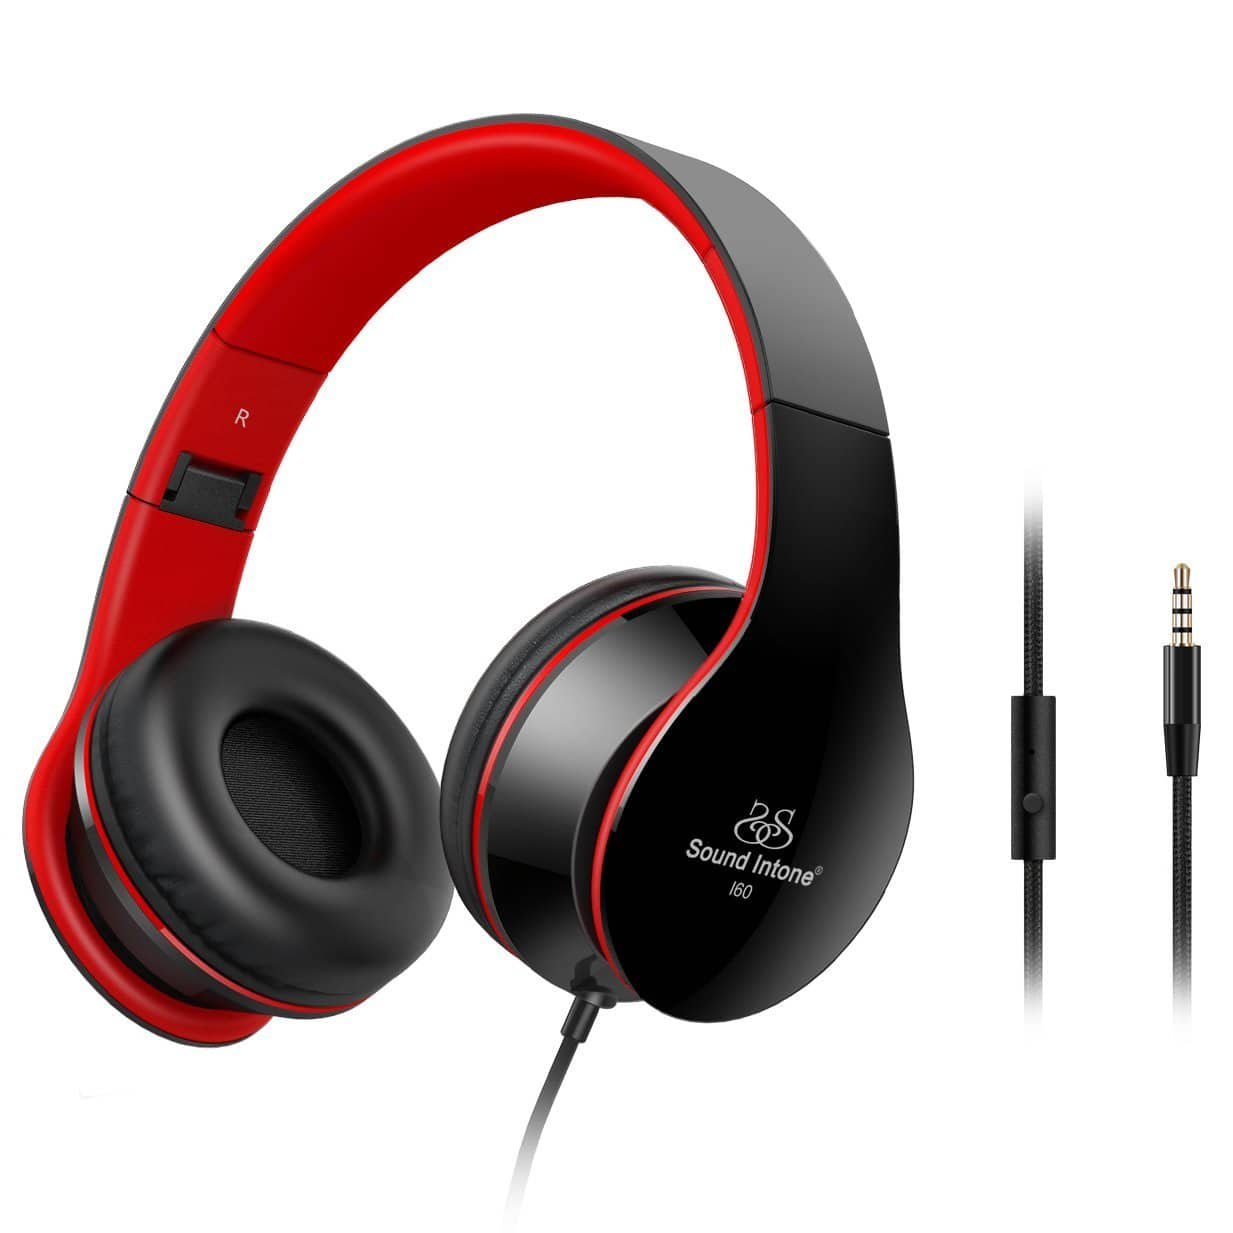 Sound Intone Lightweight Folding 3.5mm Stereo Headsets for $9.88 AC @Amazon